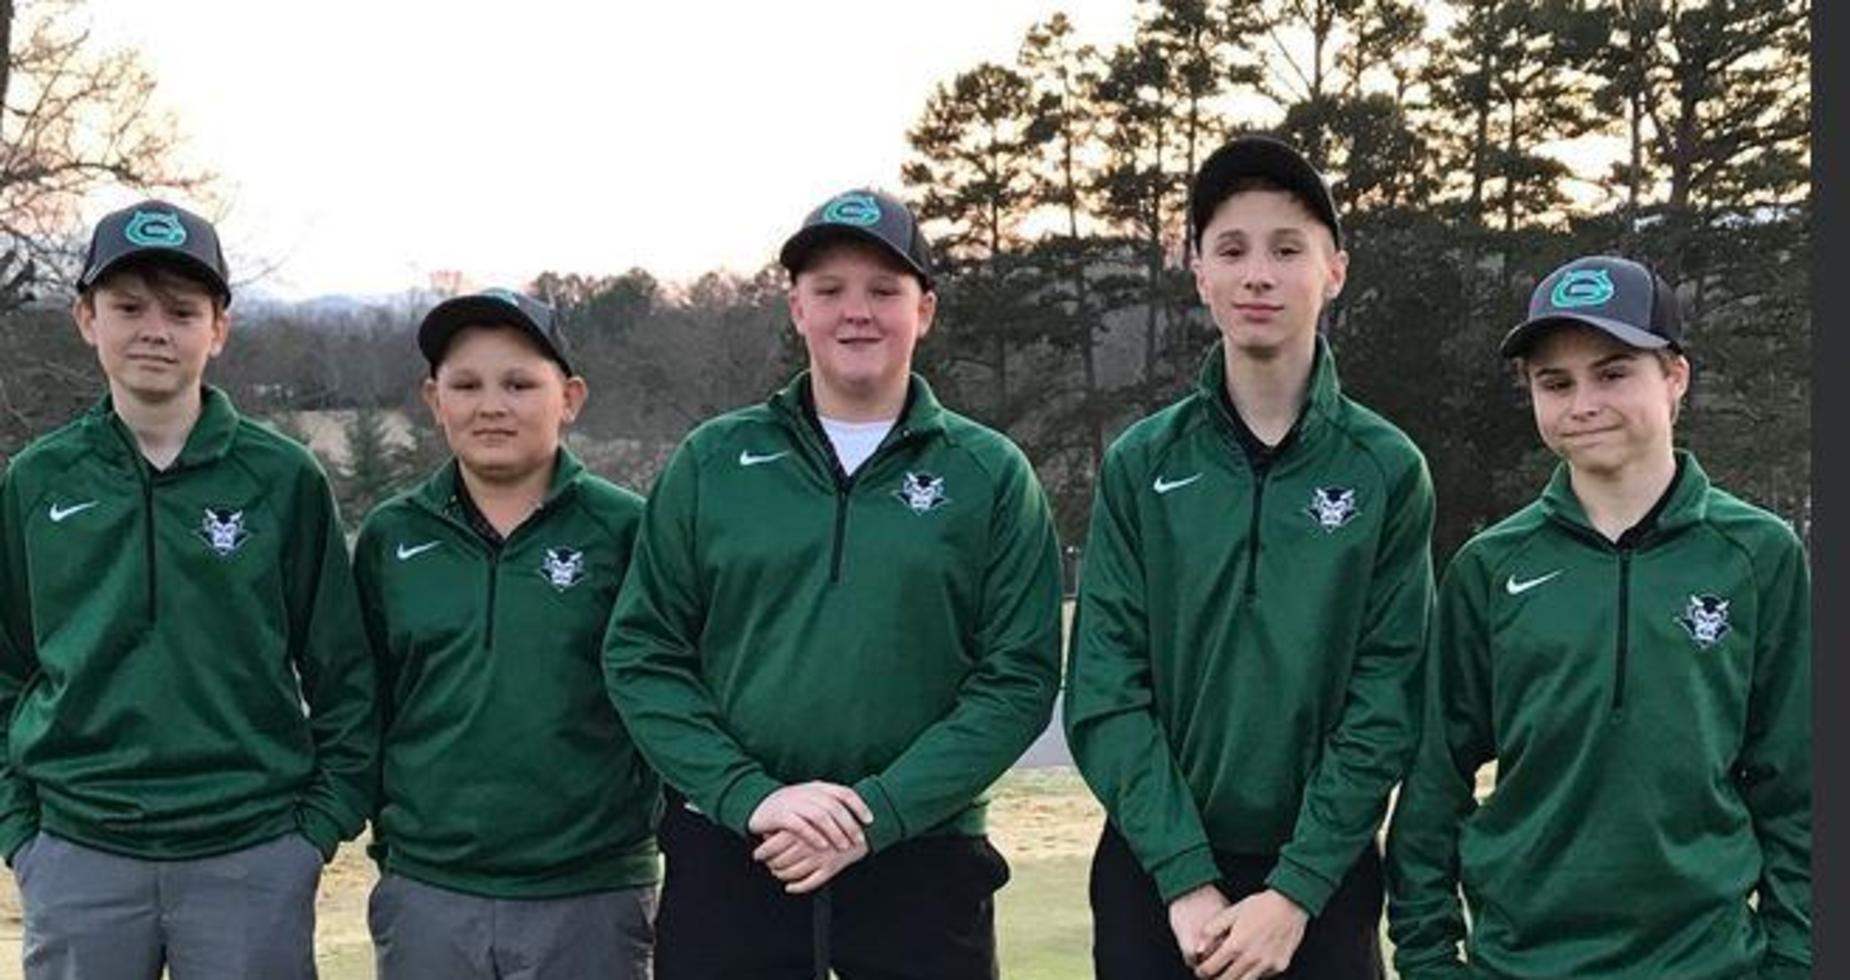 A picture of boys playing golf.